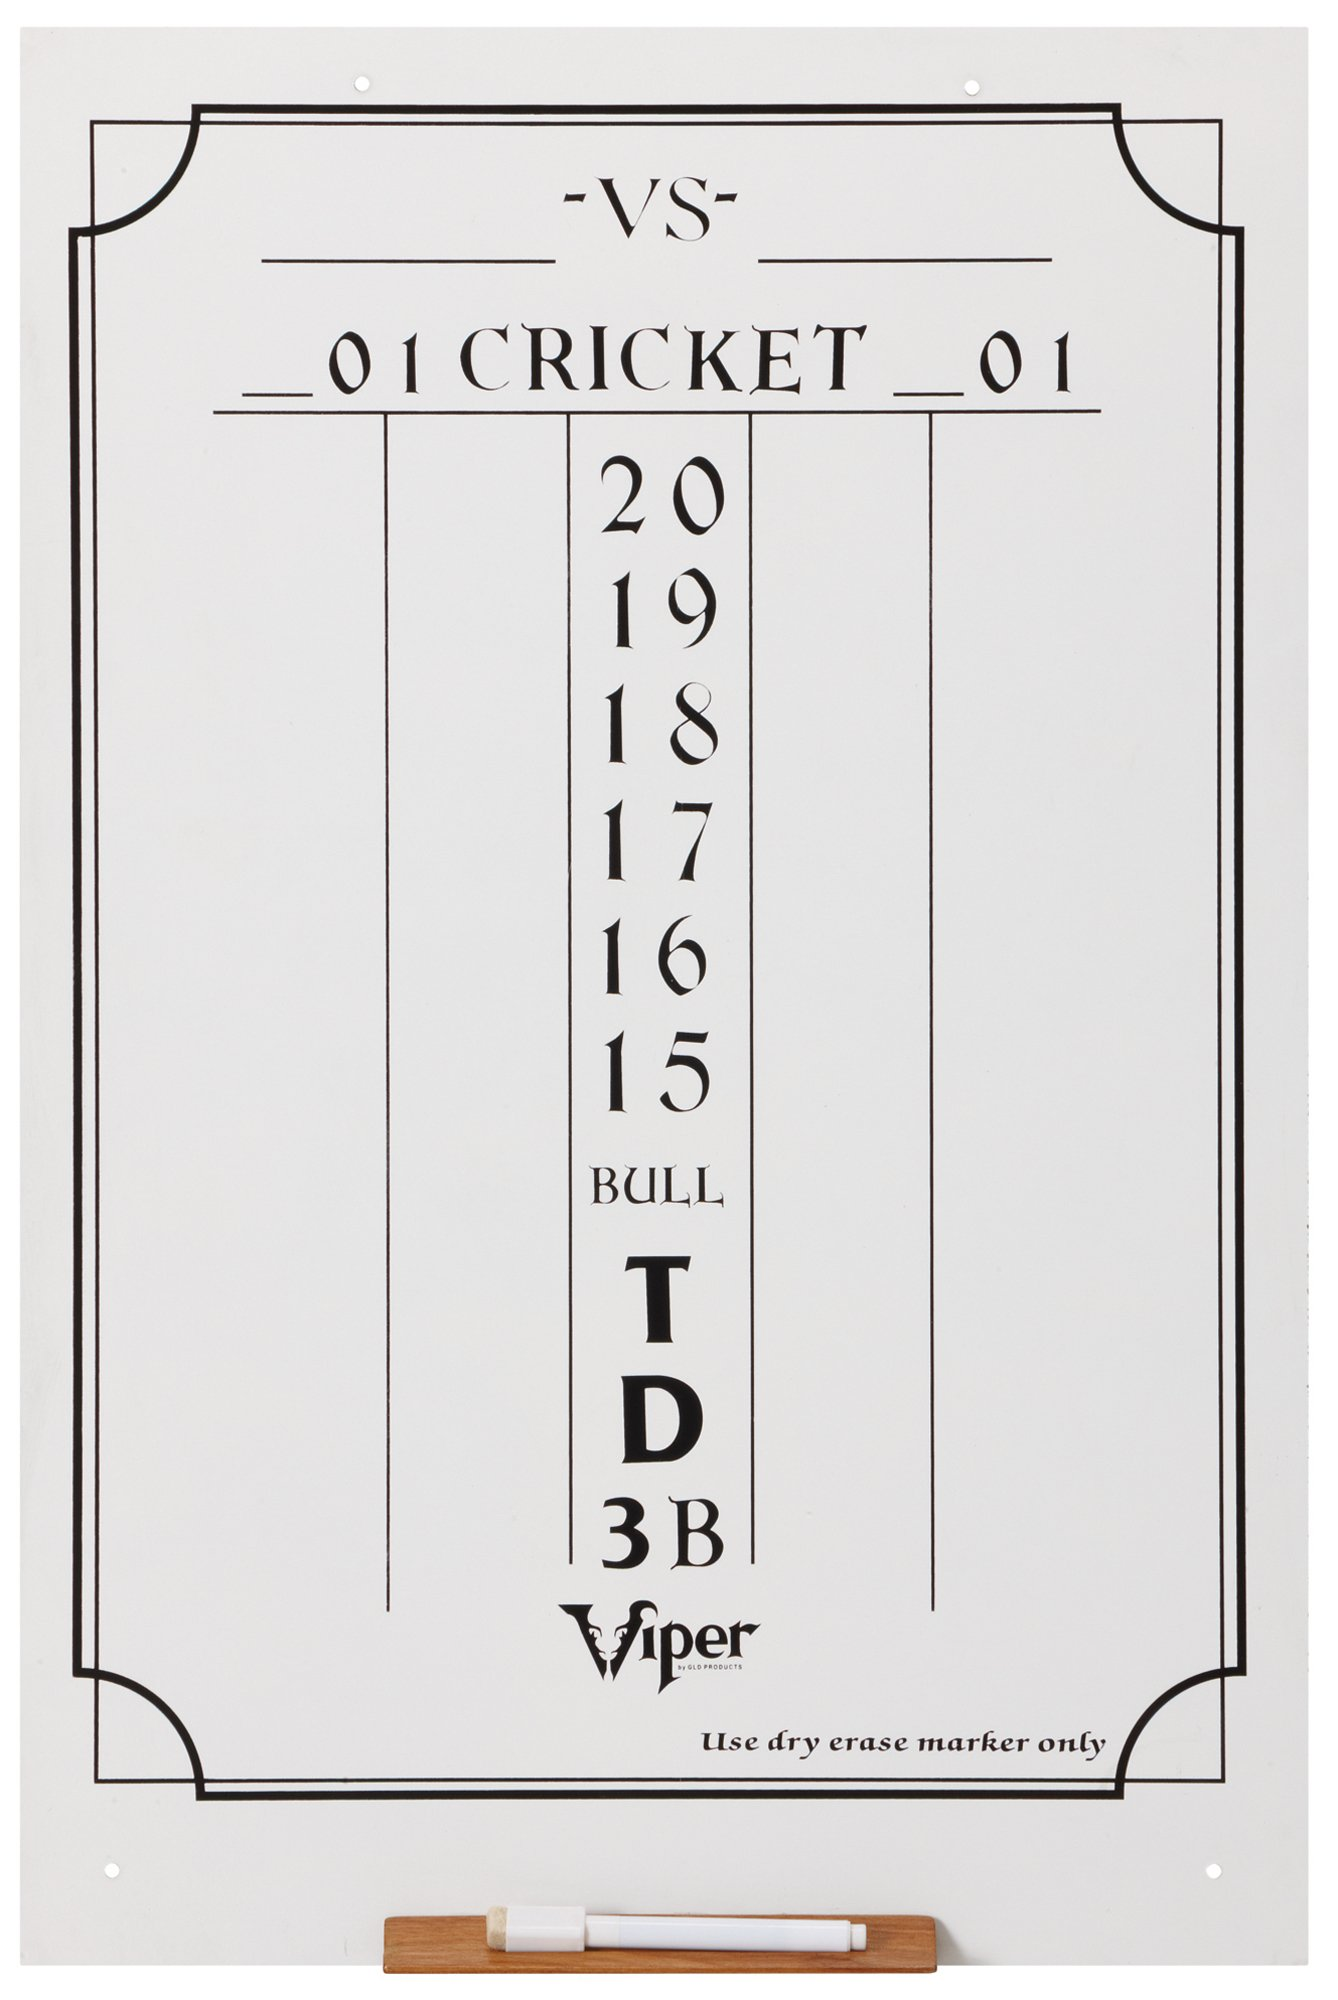 Viper Dry Erase Scoreboard, Cricket and 01 Dart Games, White, 23.5'' H x 15.5'' W